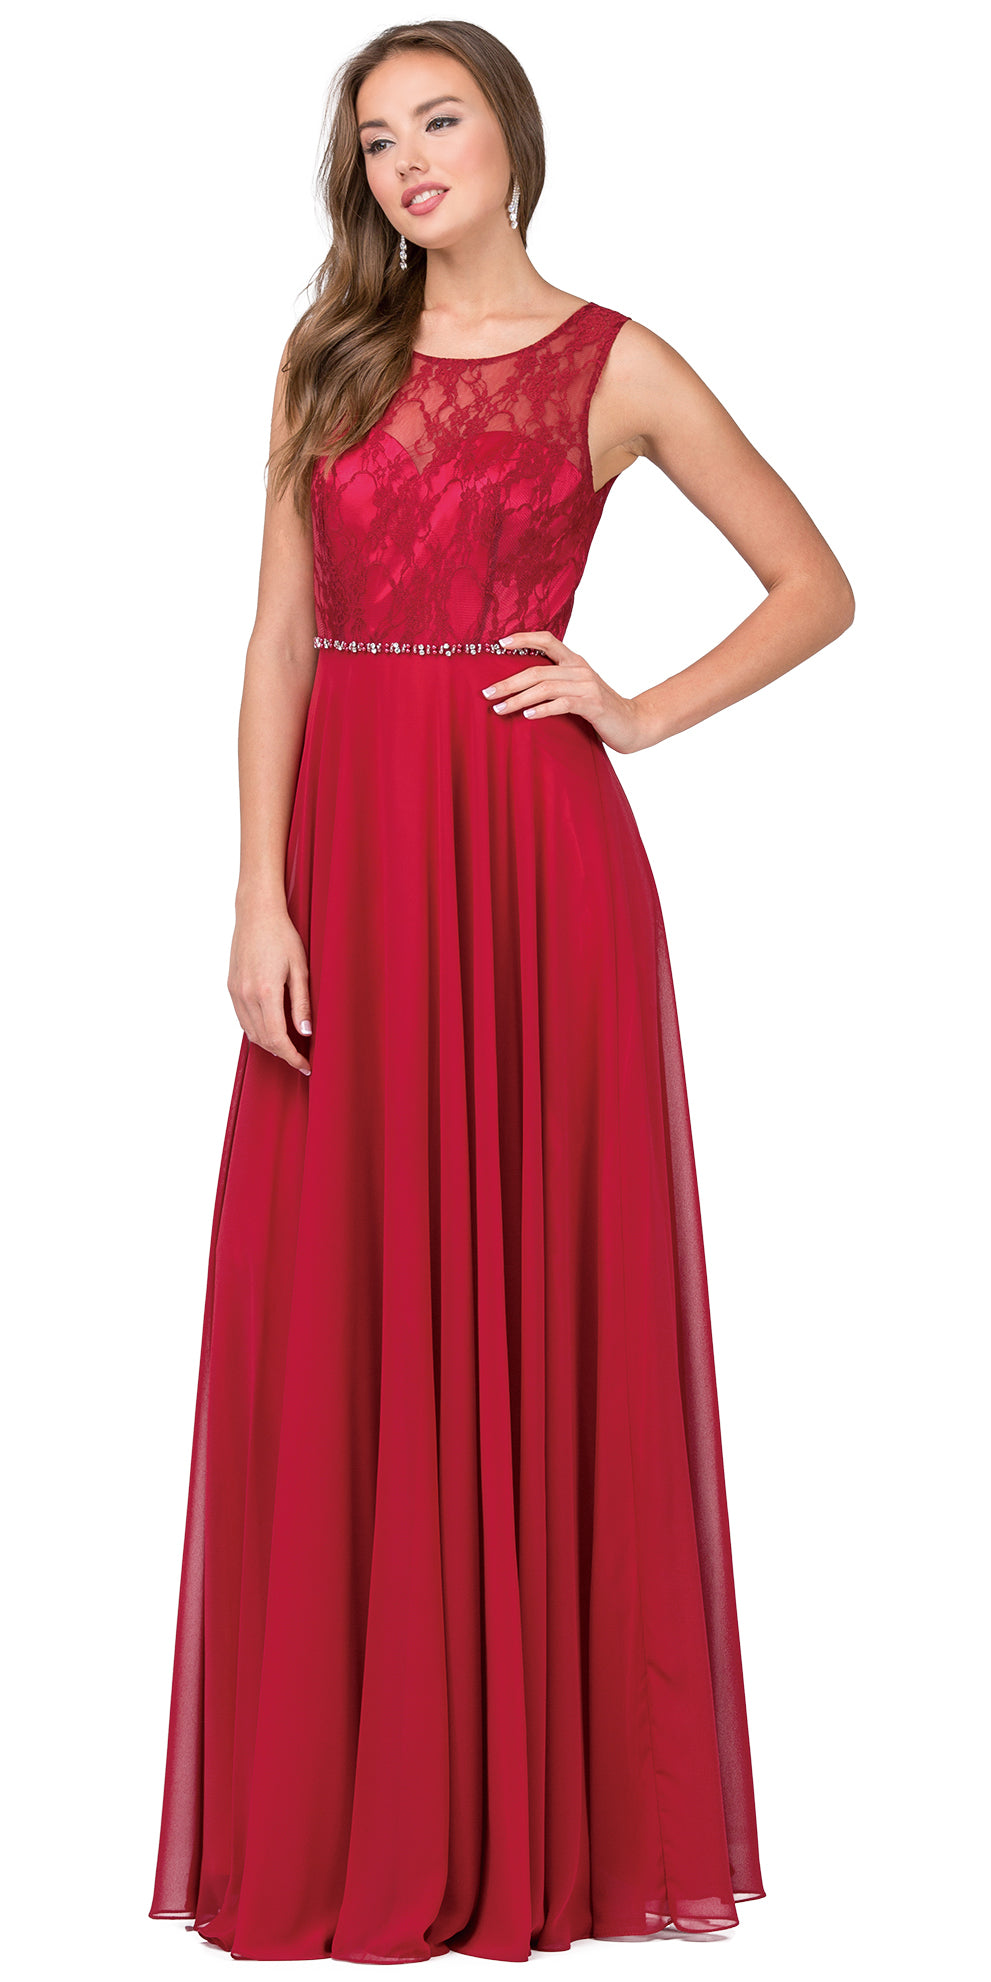 Image of Lace Bodice Beaded Waist Long Chiffon Bridesmaid Dress in Burgundy